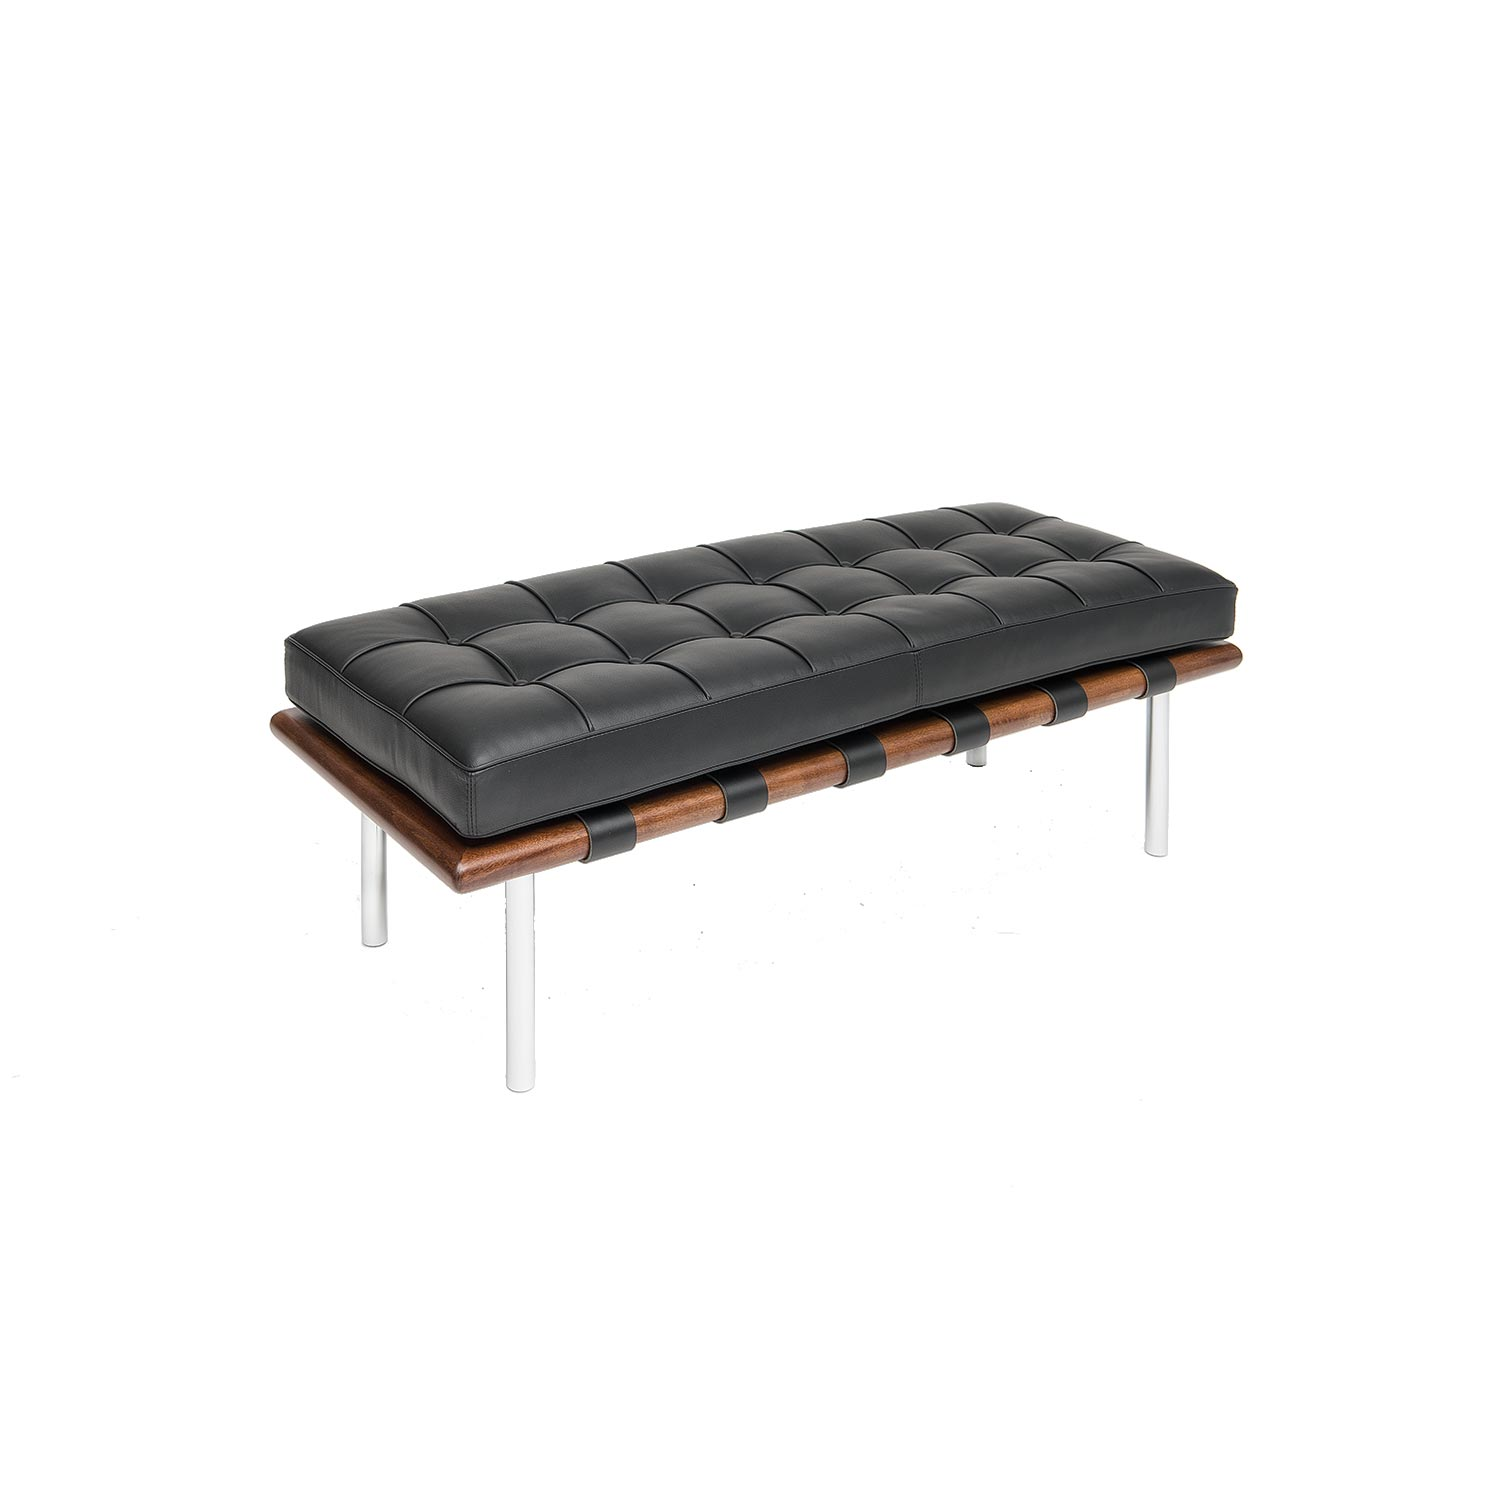 Barcelona Style Bench By Mies Van Der Rohe Steelform Design Classics